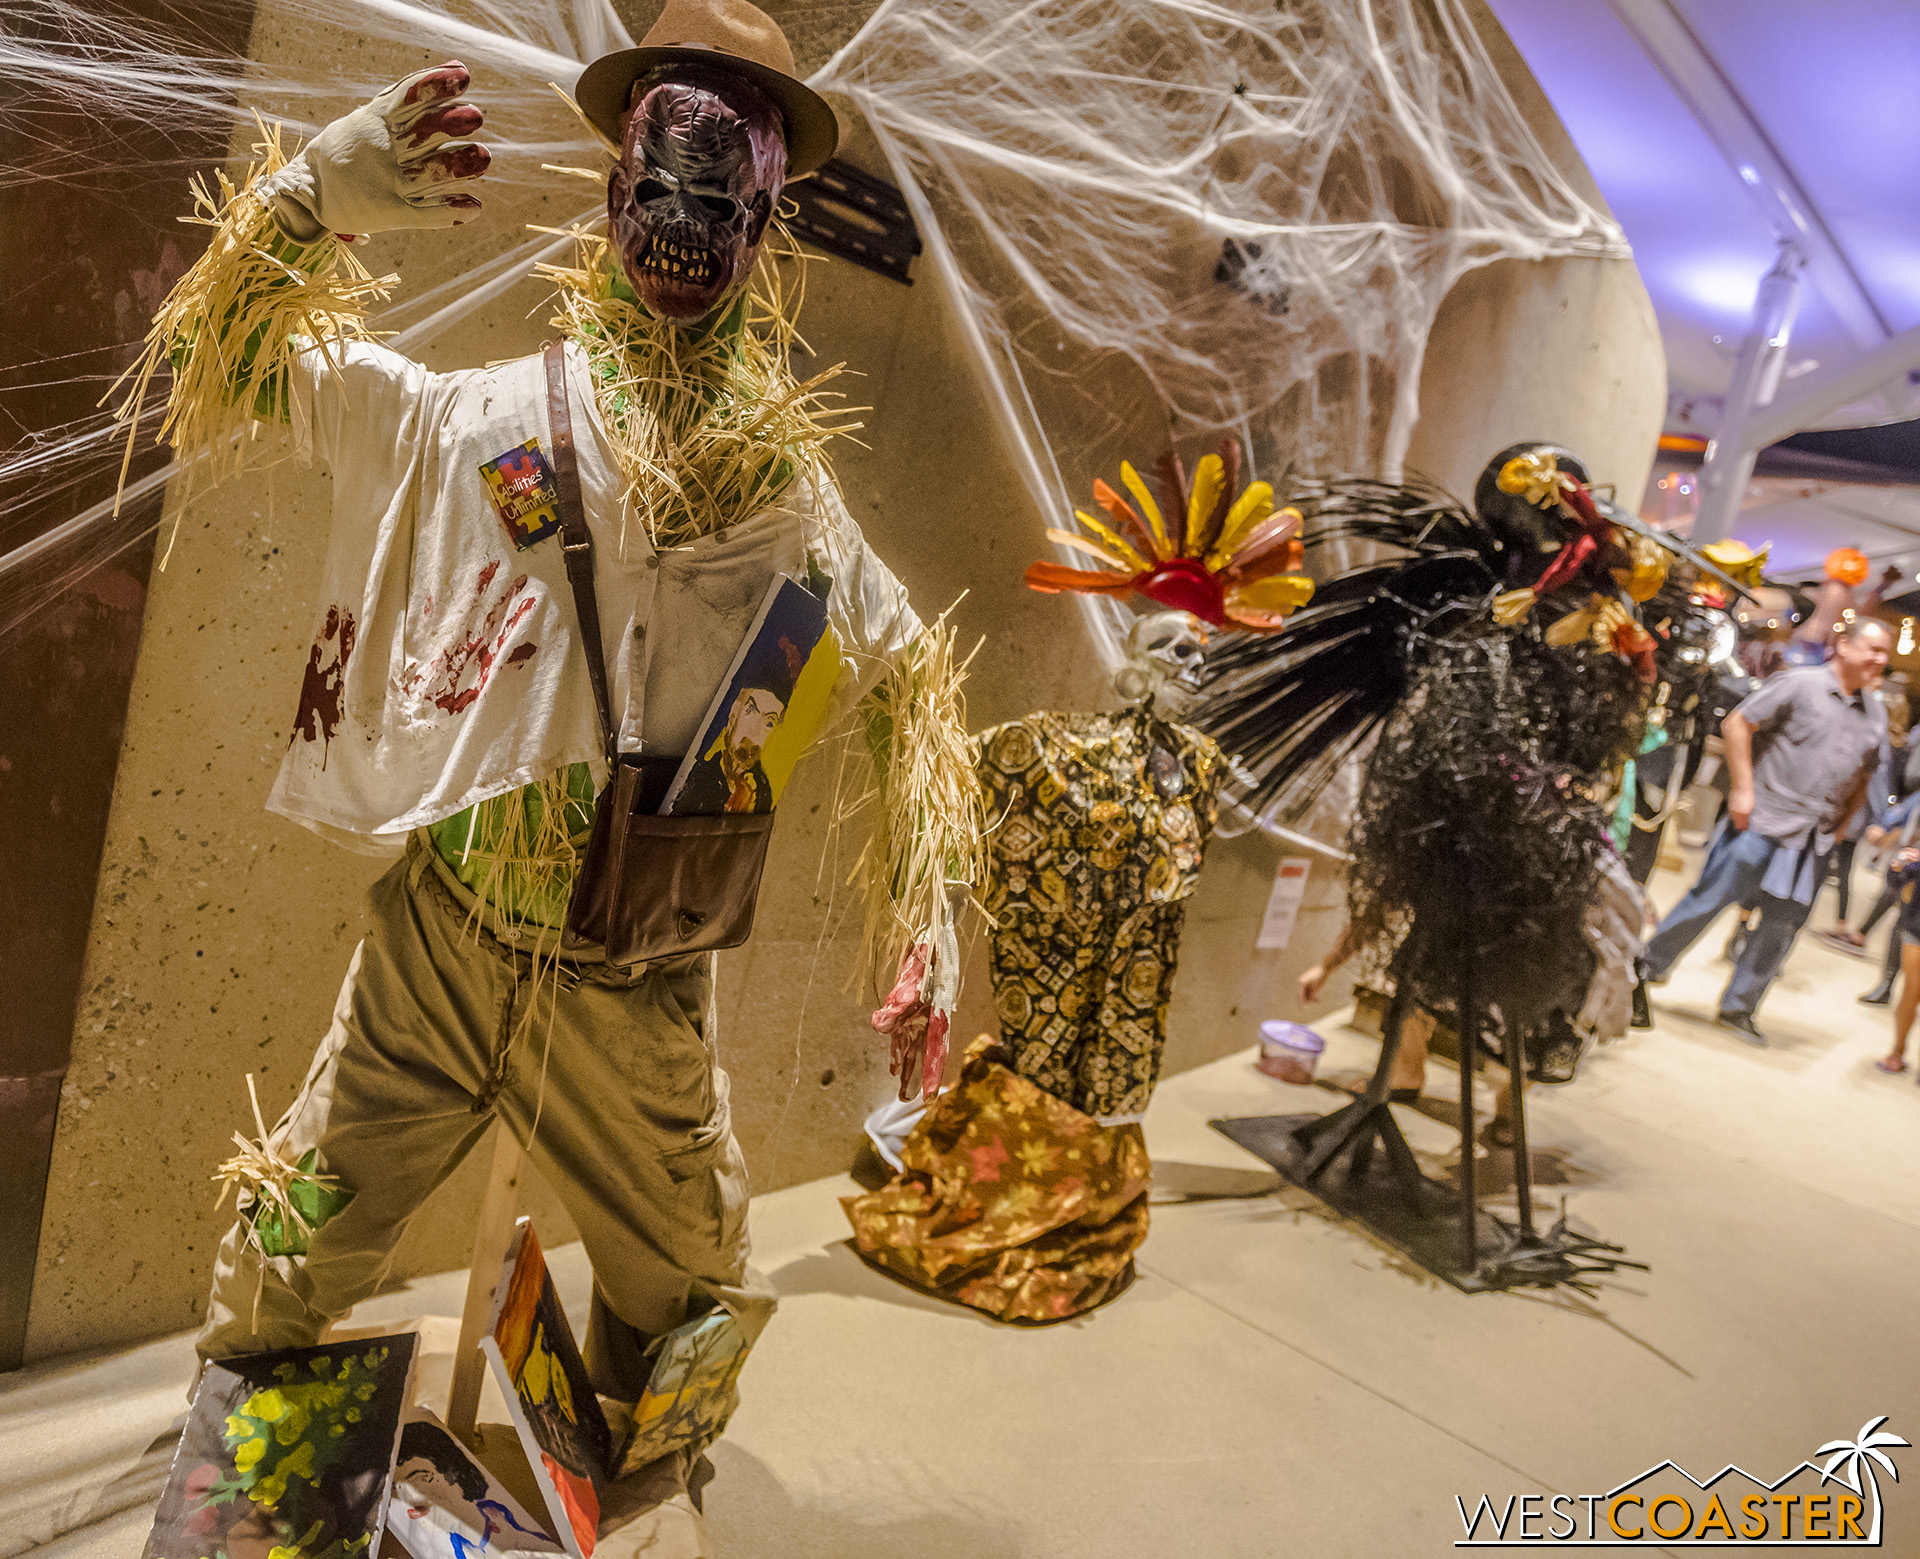 PageantOfMonsters-19_0329-B-Scarecrows-0005.jpg